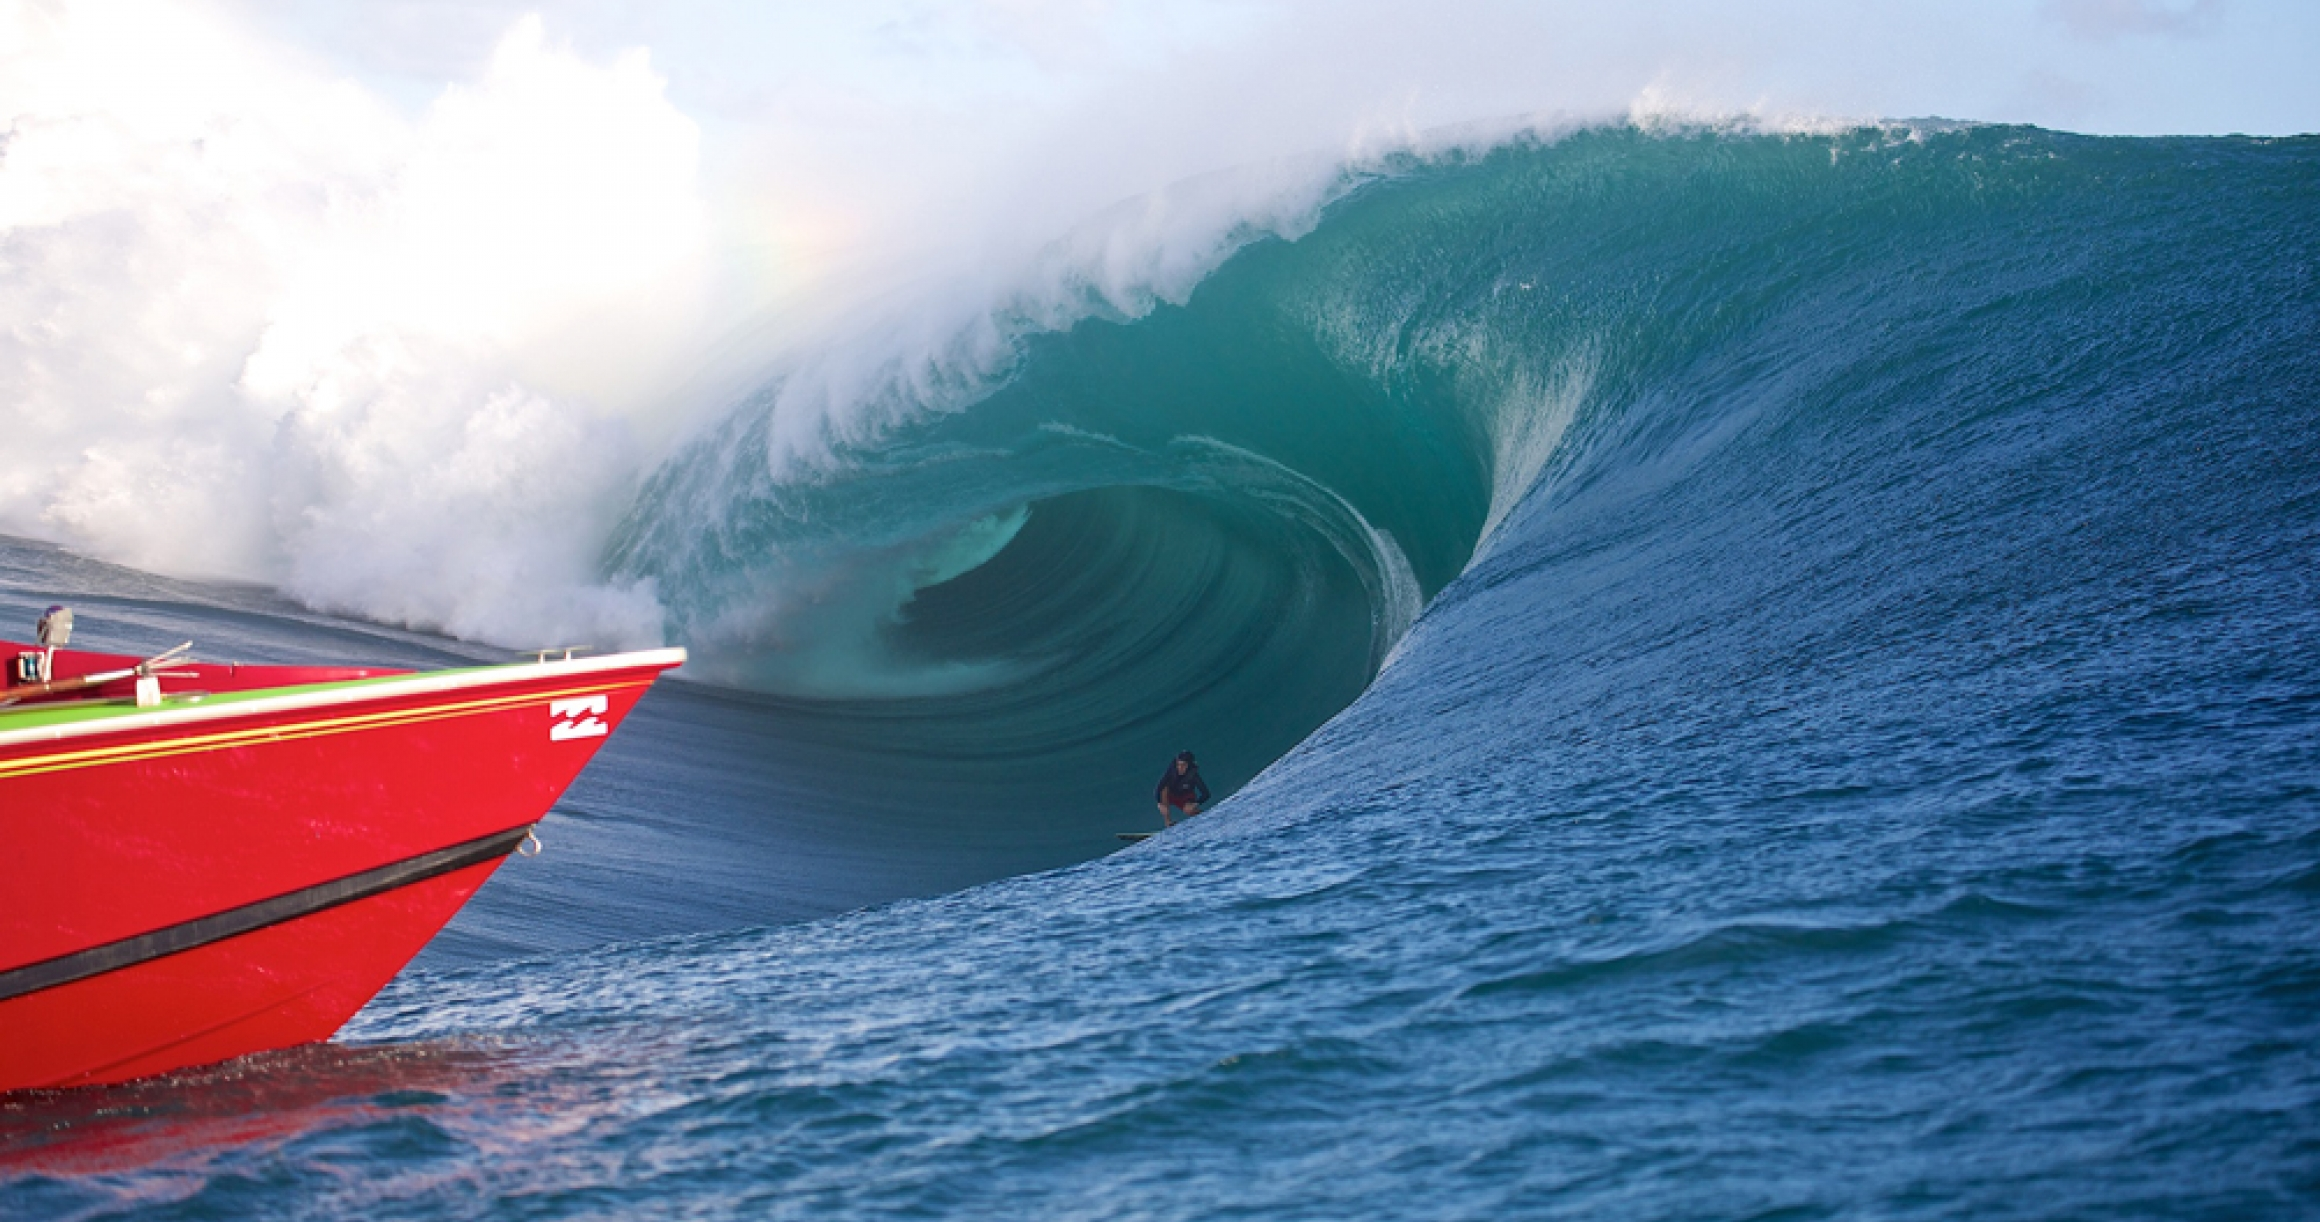 dcae5ddf1f15d1 West is Not Best at Teahupoo - Magicseaweed.com